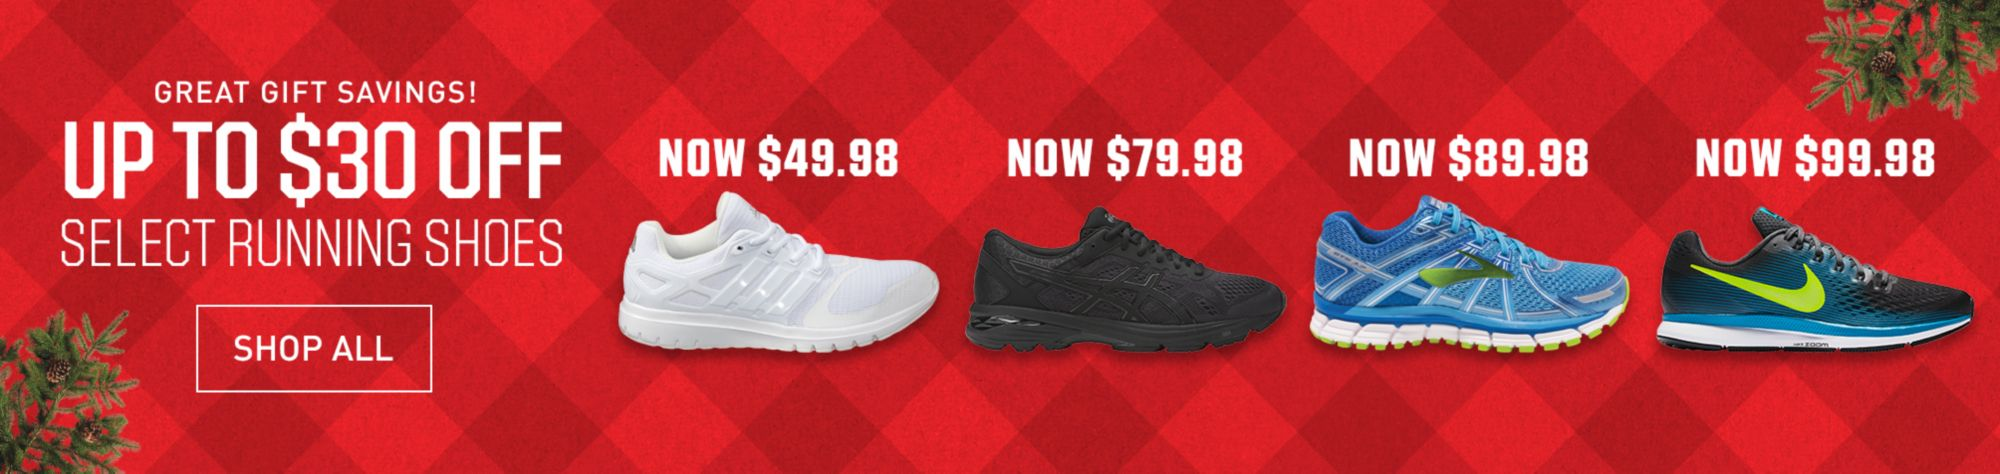 up to 30 off select running shoes shop all